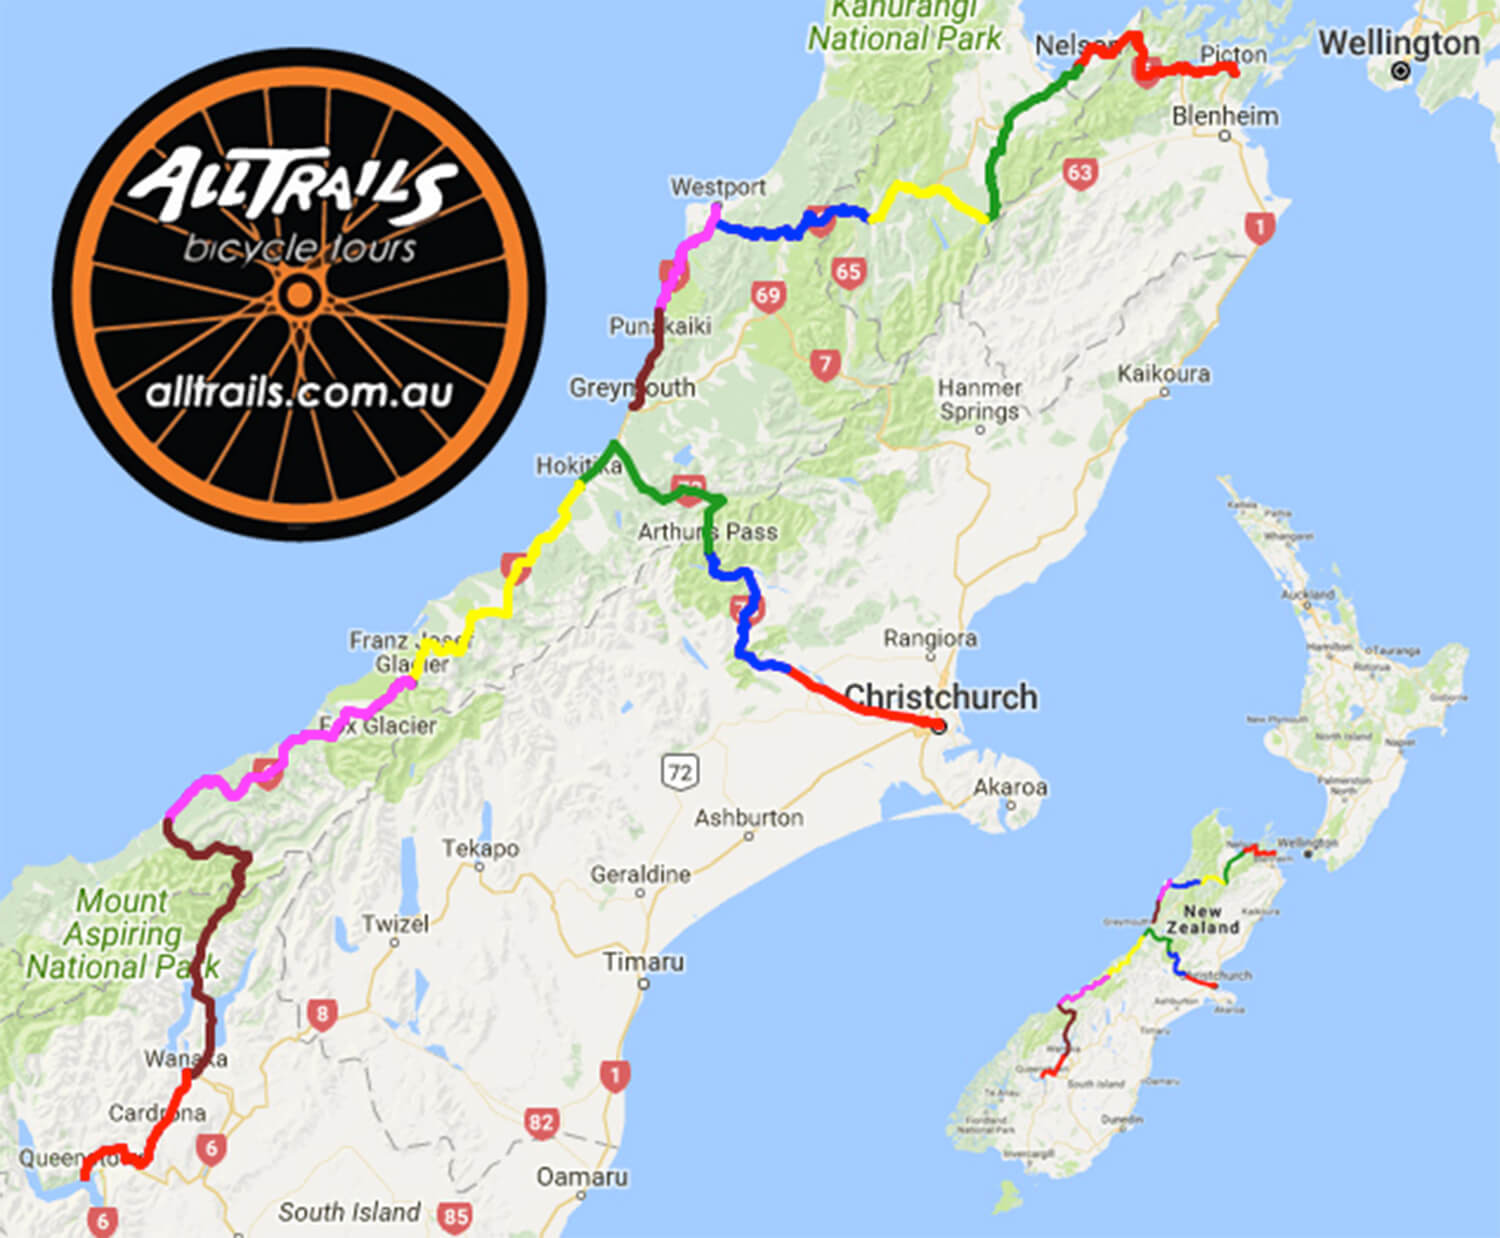 New Zealand South Island - Tour Route